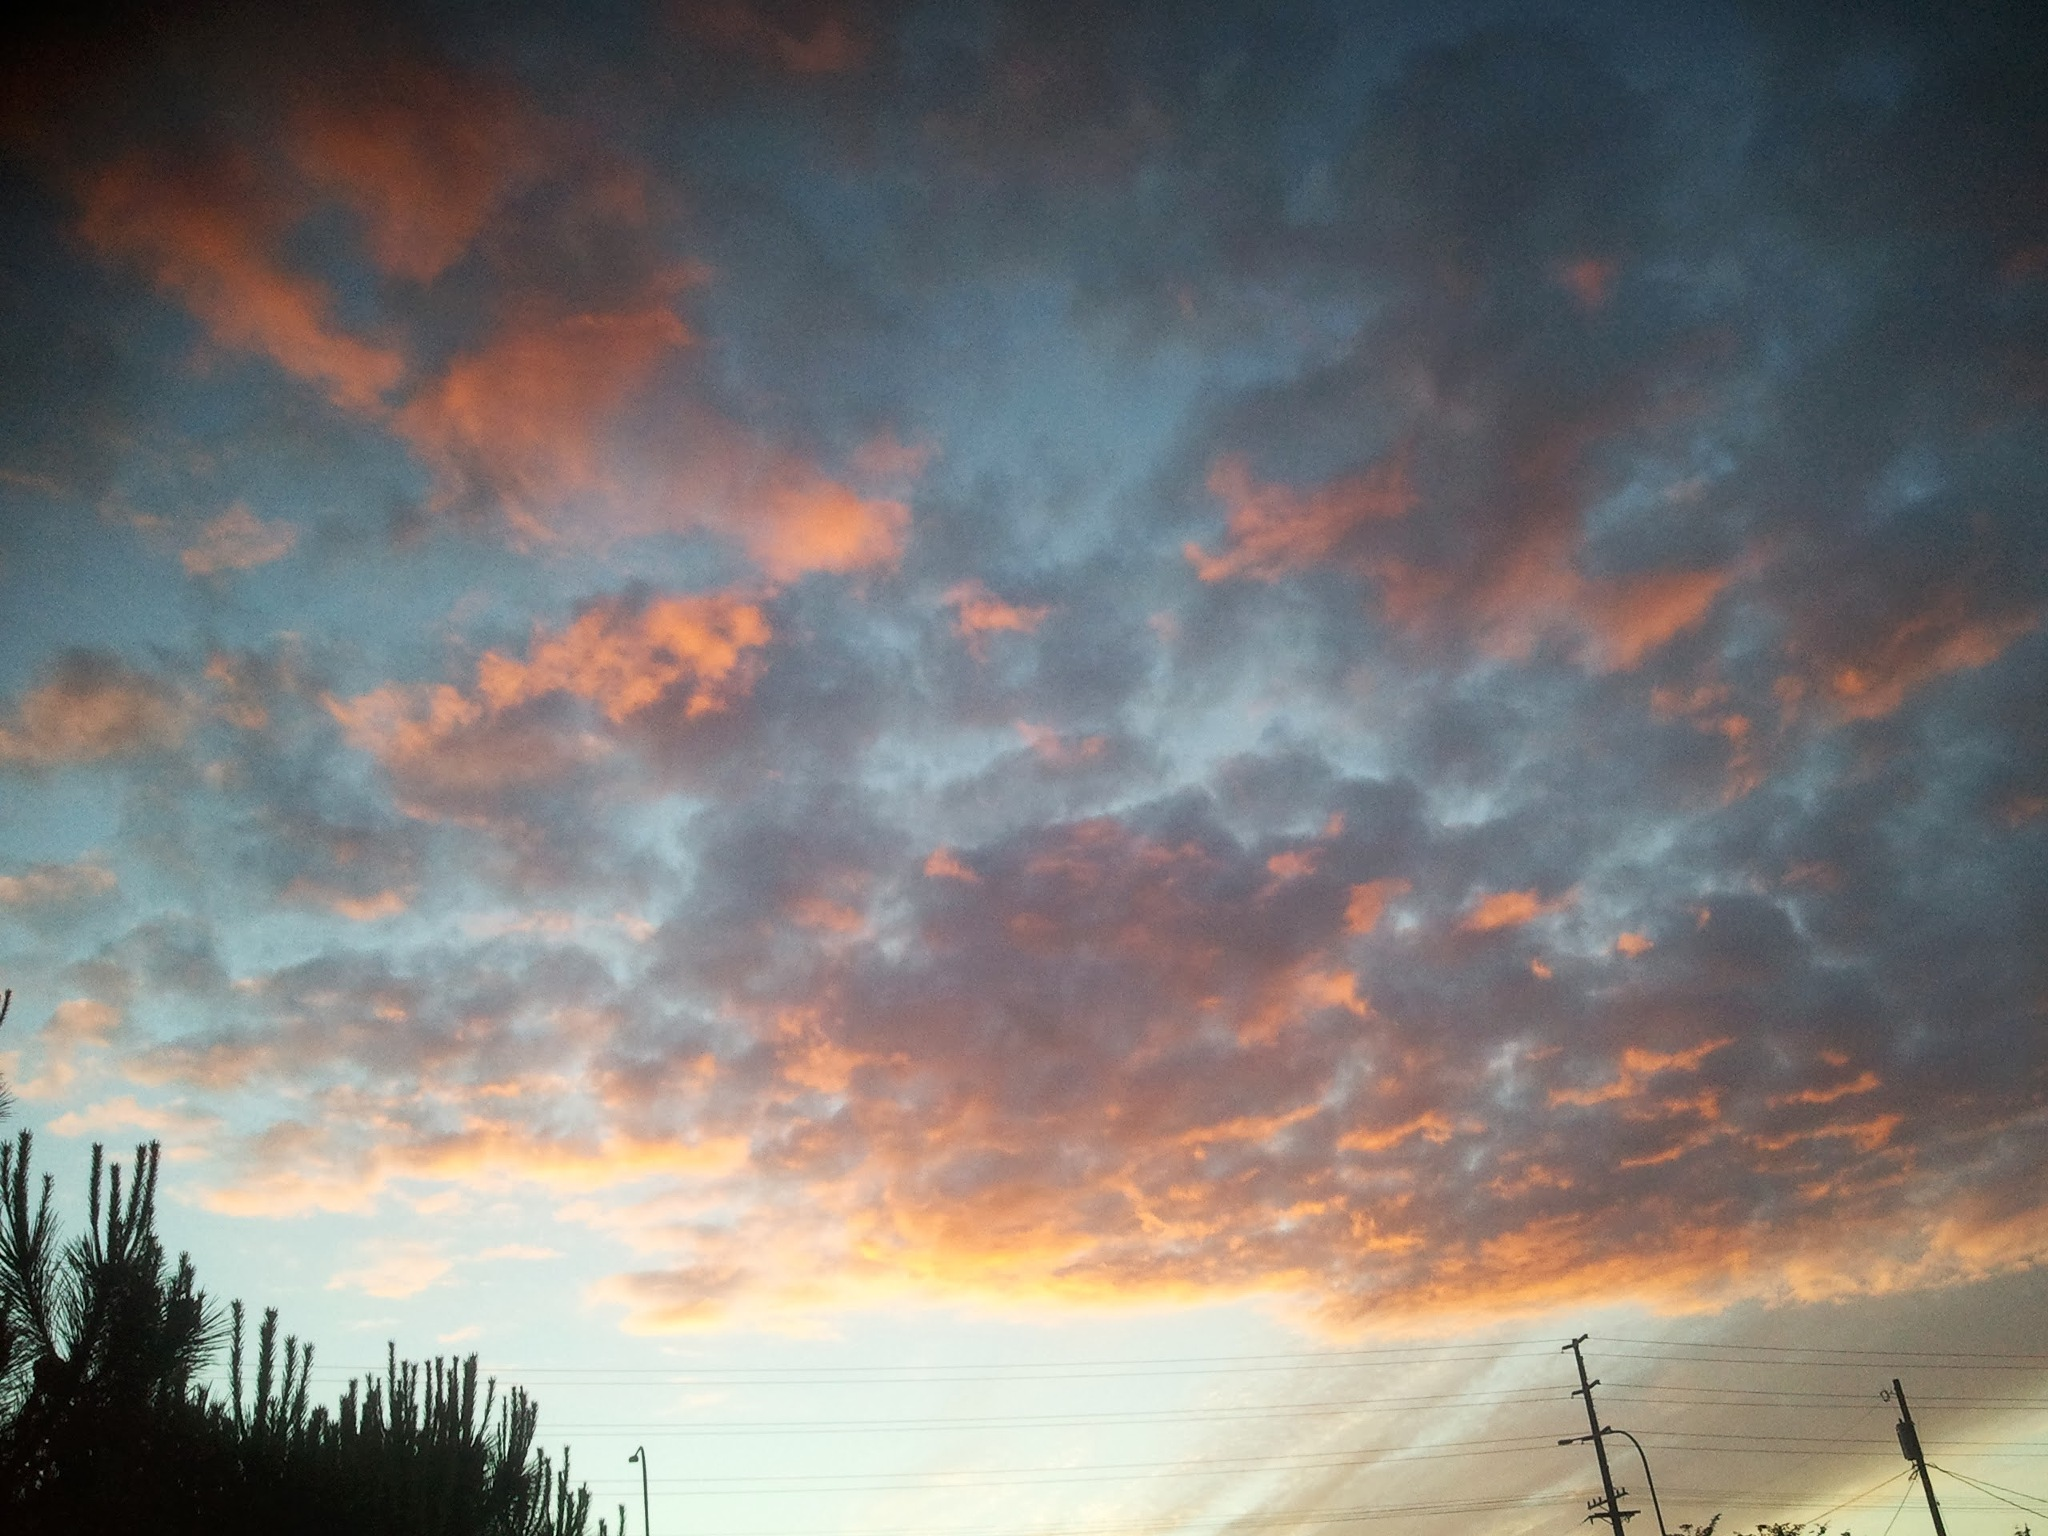 Sunset at the trailer park by Frme2know